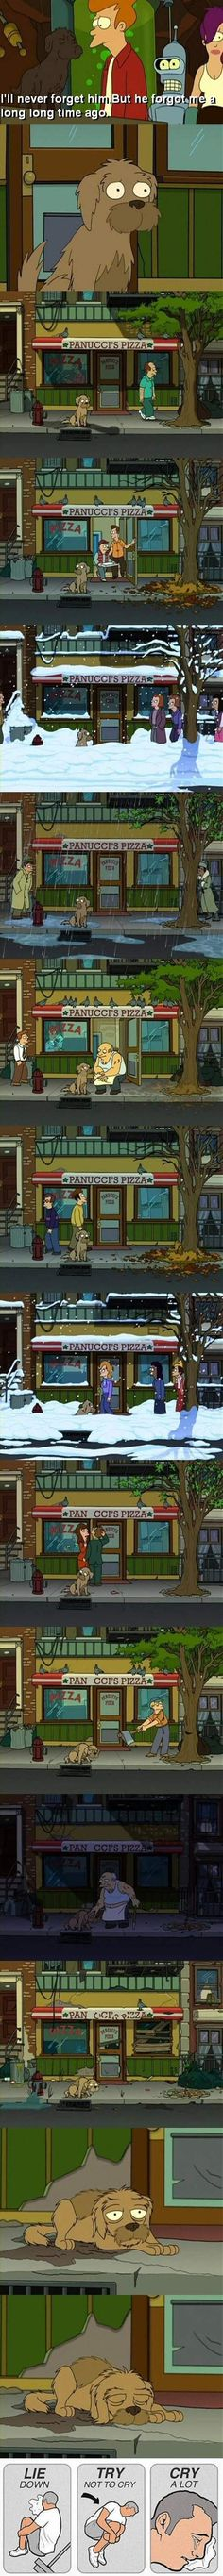 not even funny, but i had no other board to put it under! The saddest Futurama moment.